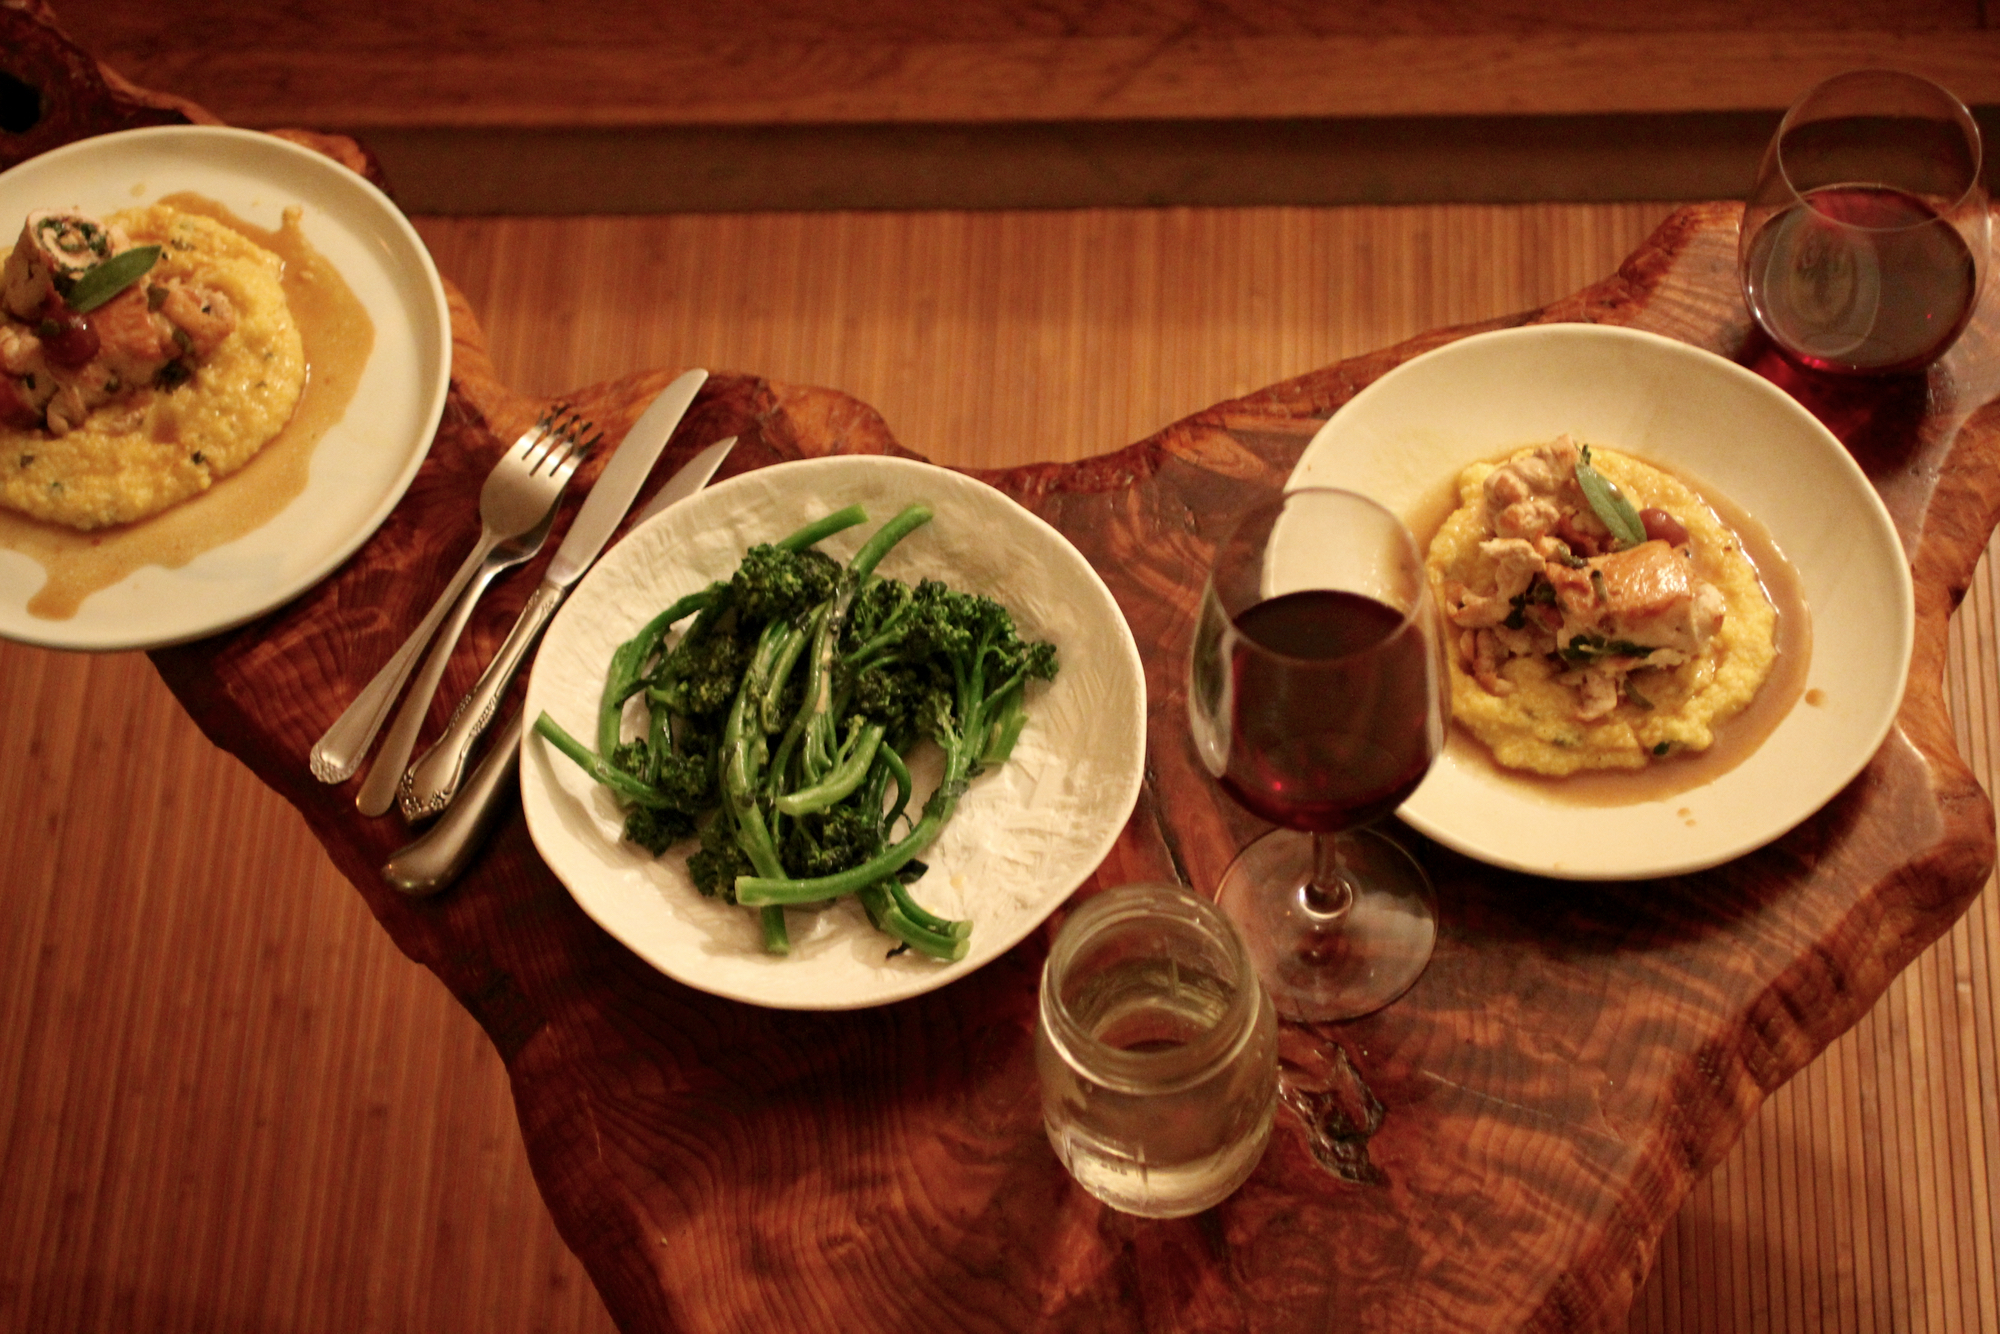 A meal of chicken brandied cherry saltimbocca, broccolini, and of course, wine.